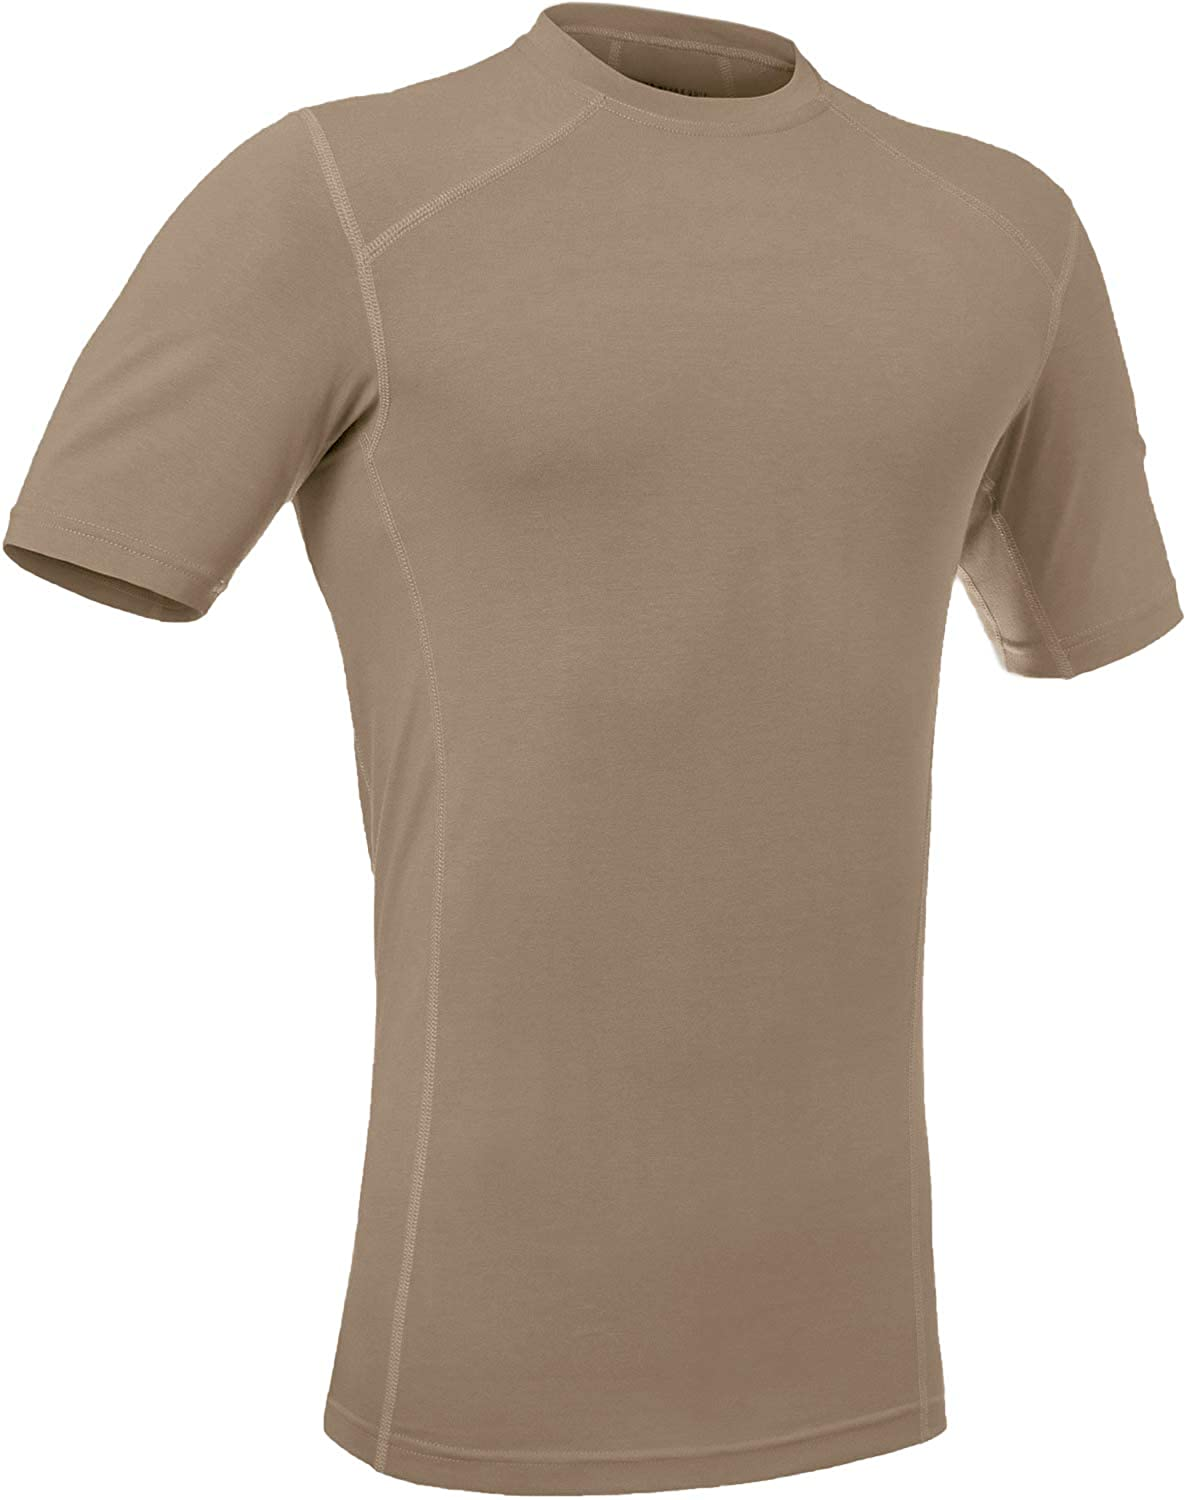 1f63e1439 Amazon.com  281Z Military Stretch Cotton Underwear T-Shirt - Tactical  Hiking Outdoor - Punisher Combat Line  Clothing